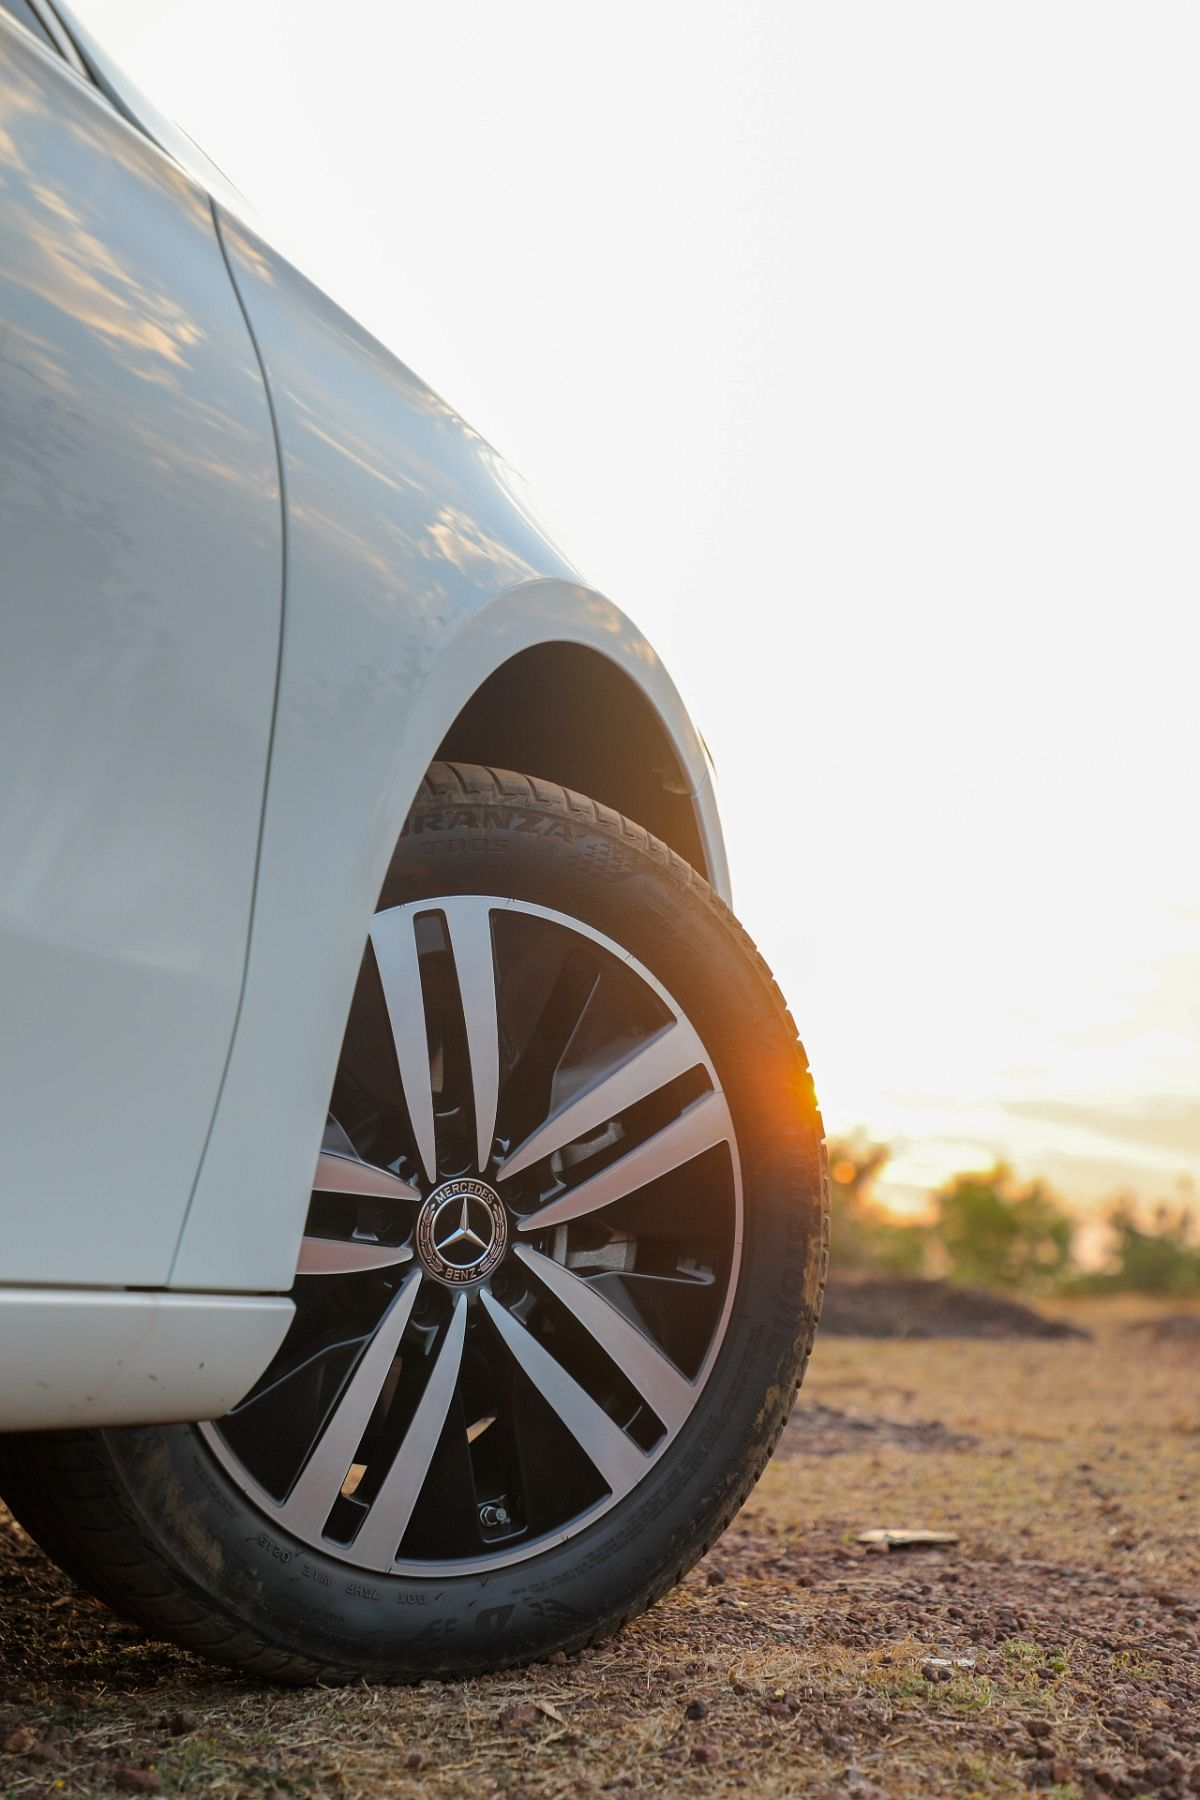 17-inch wheels on higher-profile rubber are standard and the ride height has gone up by 15mm